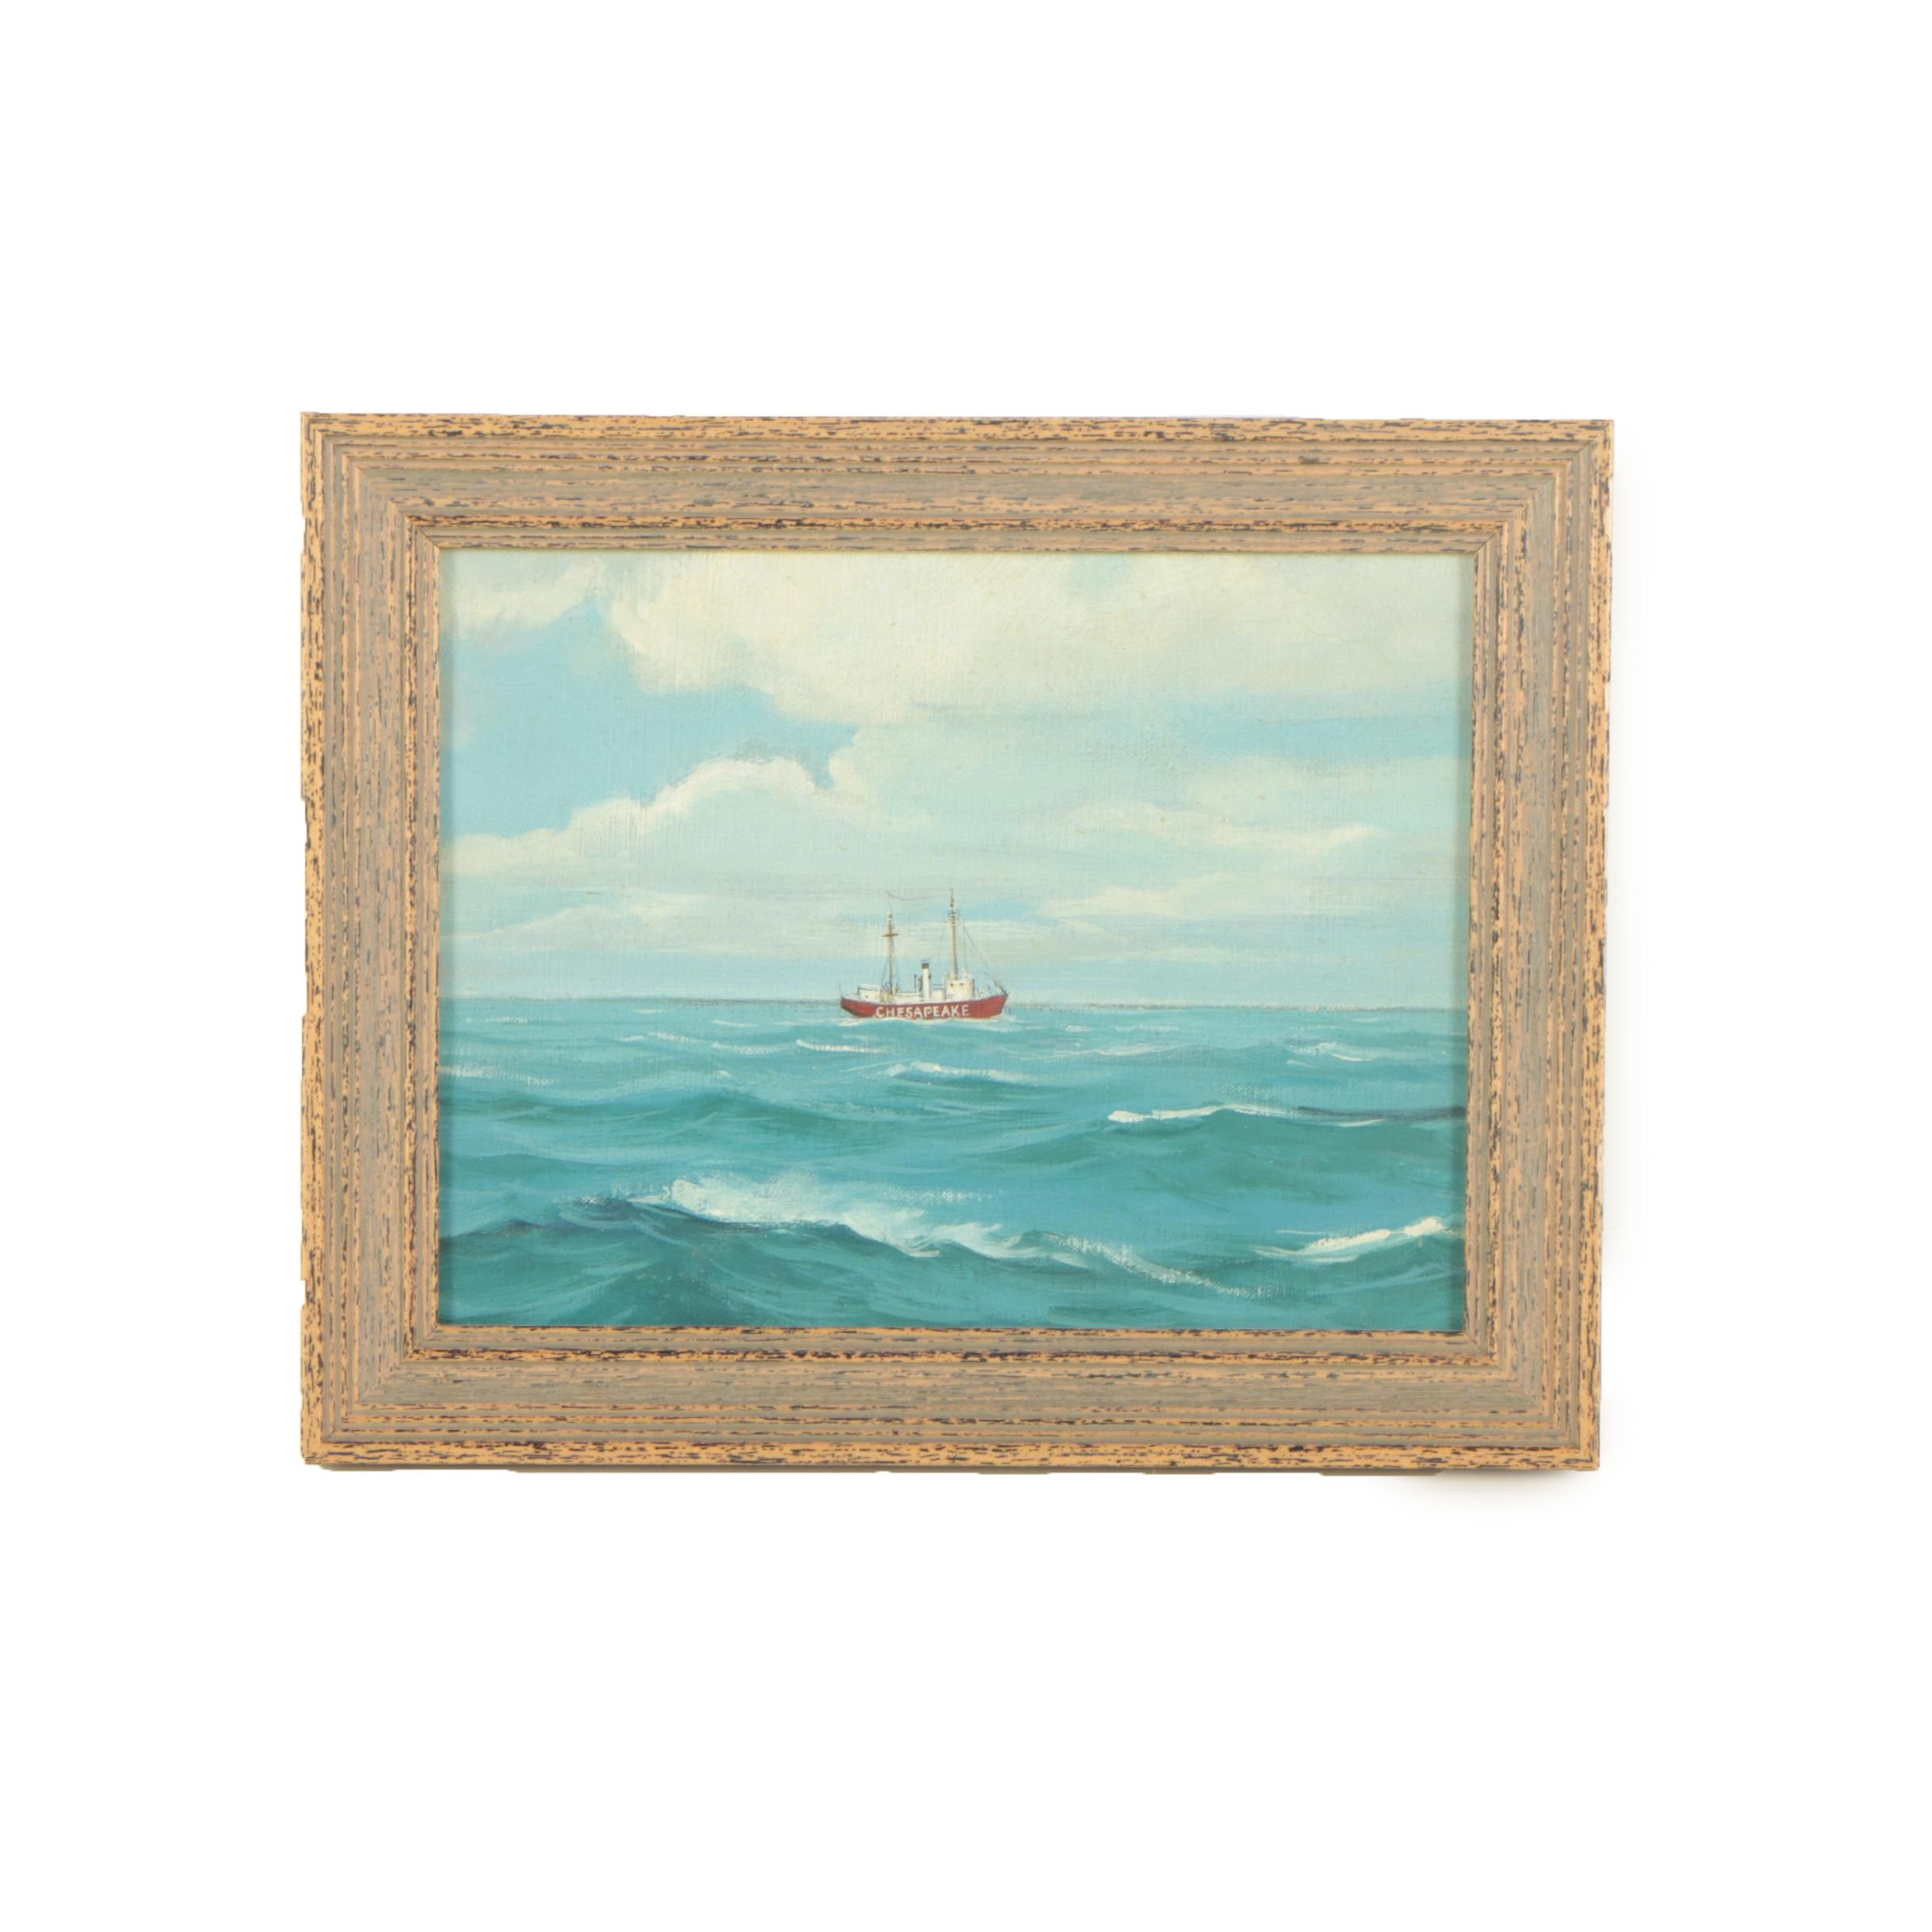 Miniature Oil on Board Painting of a Steamship at Sea